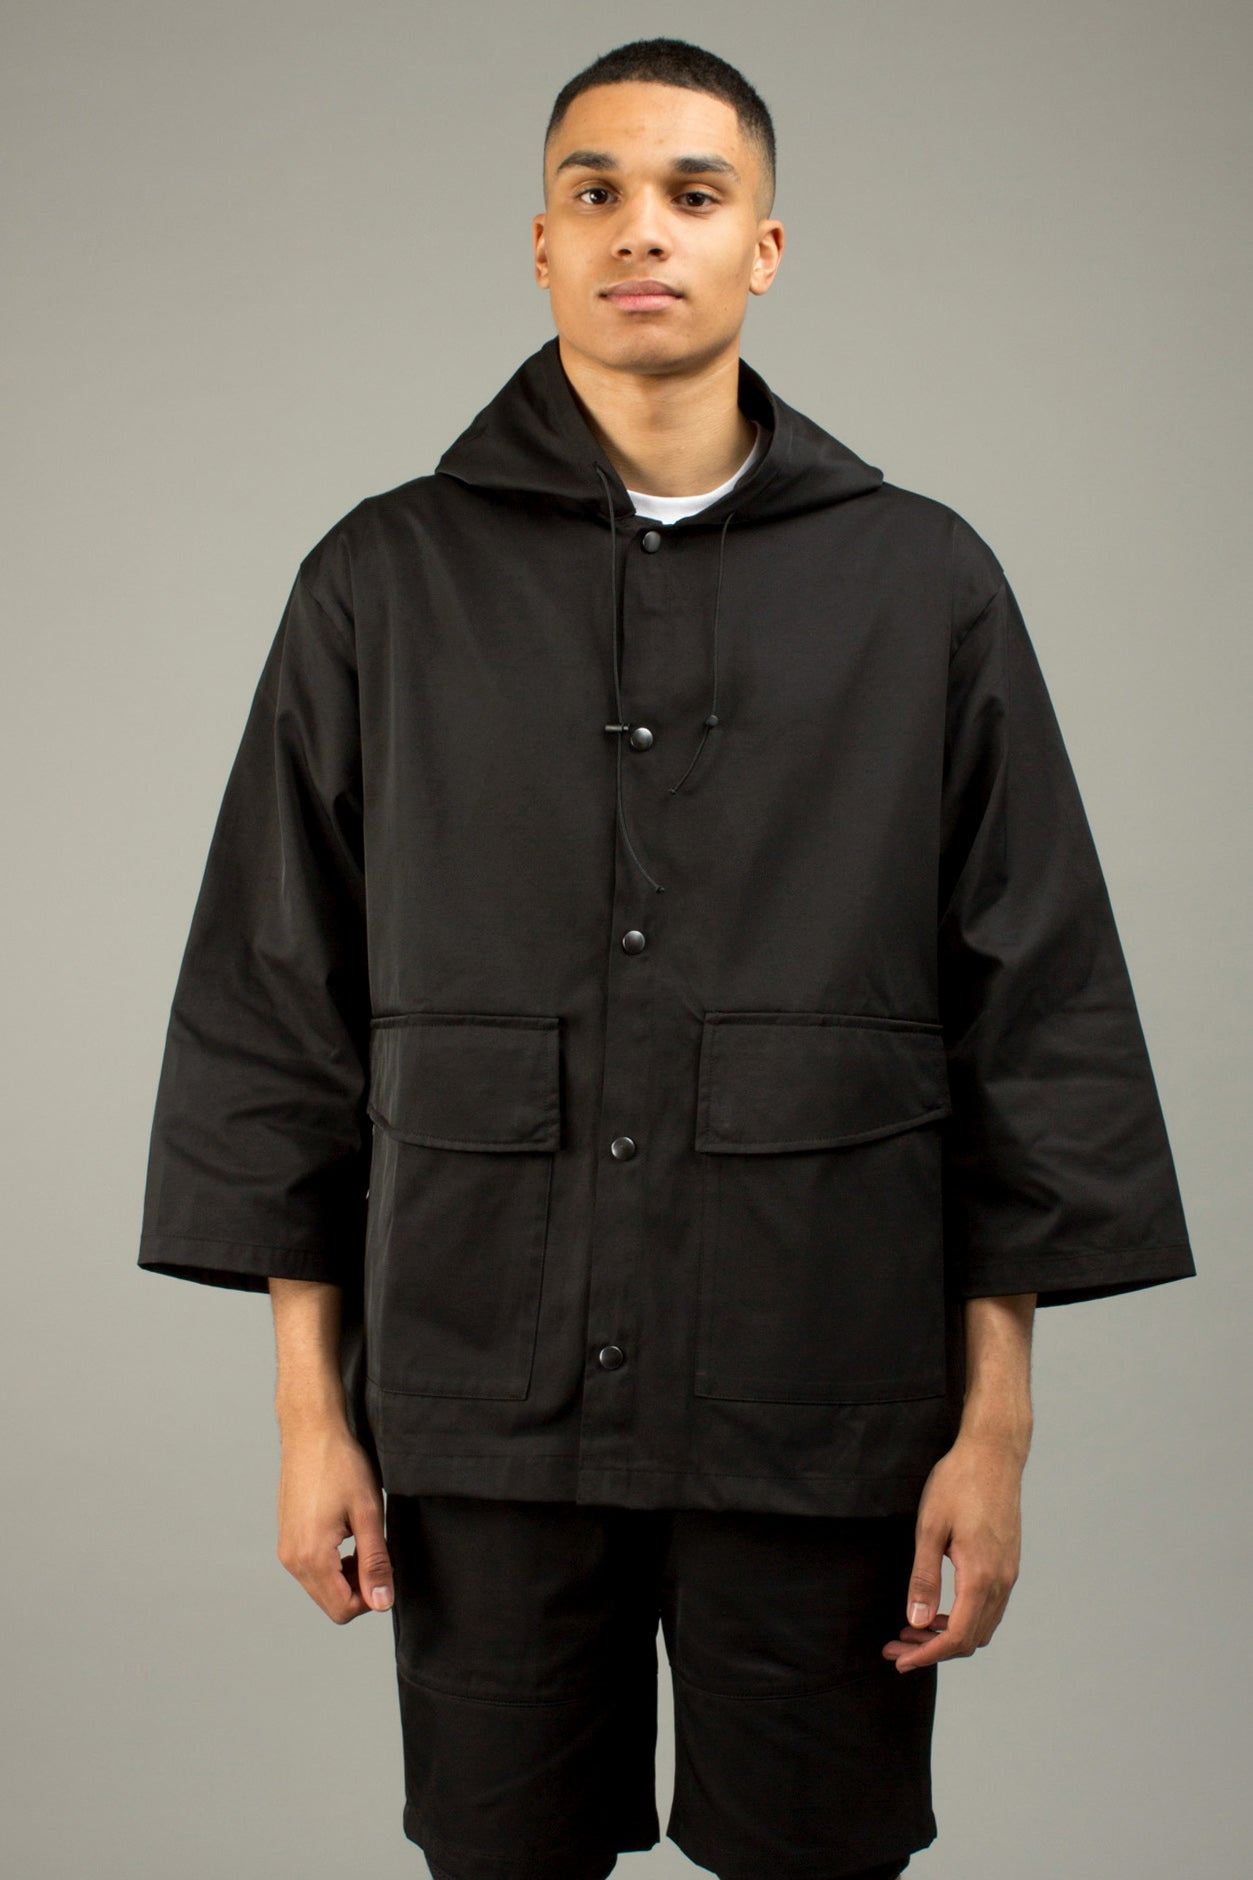 BLACK 3/4 SLEEVE PARKA